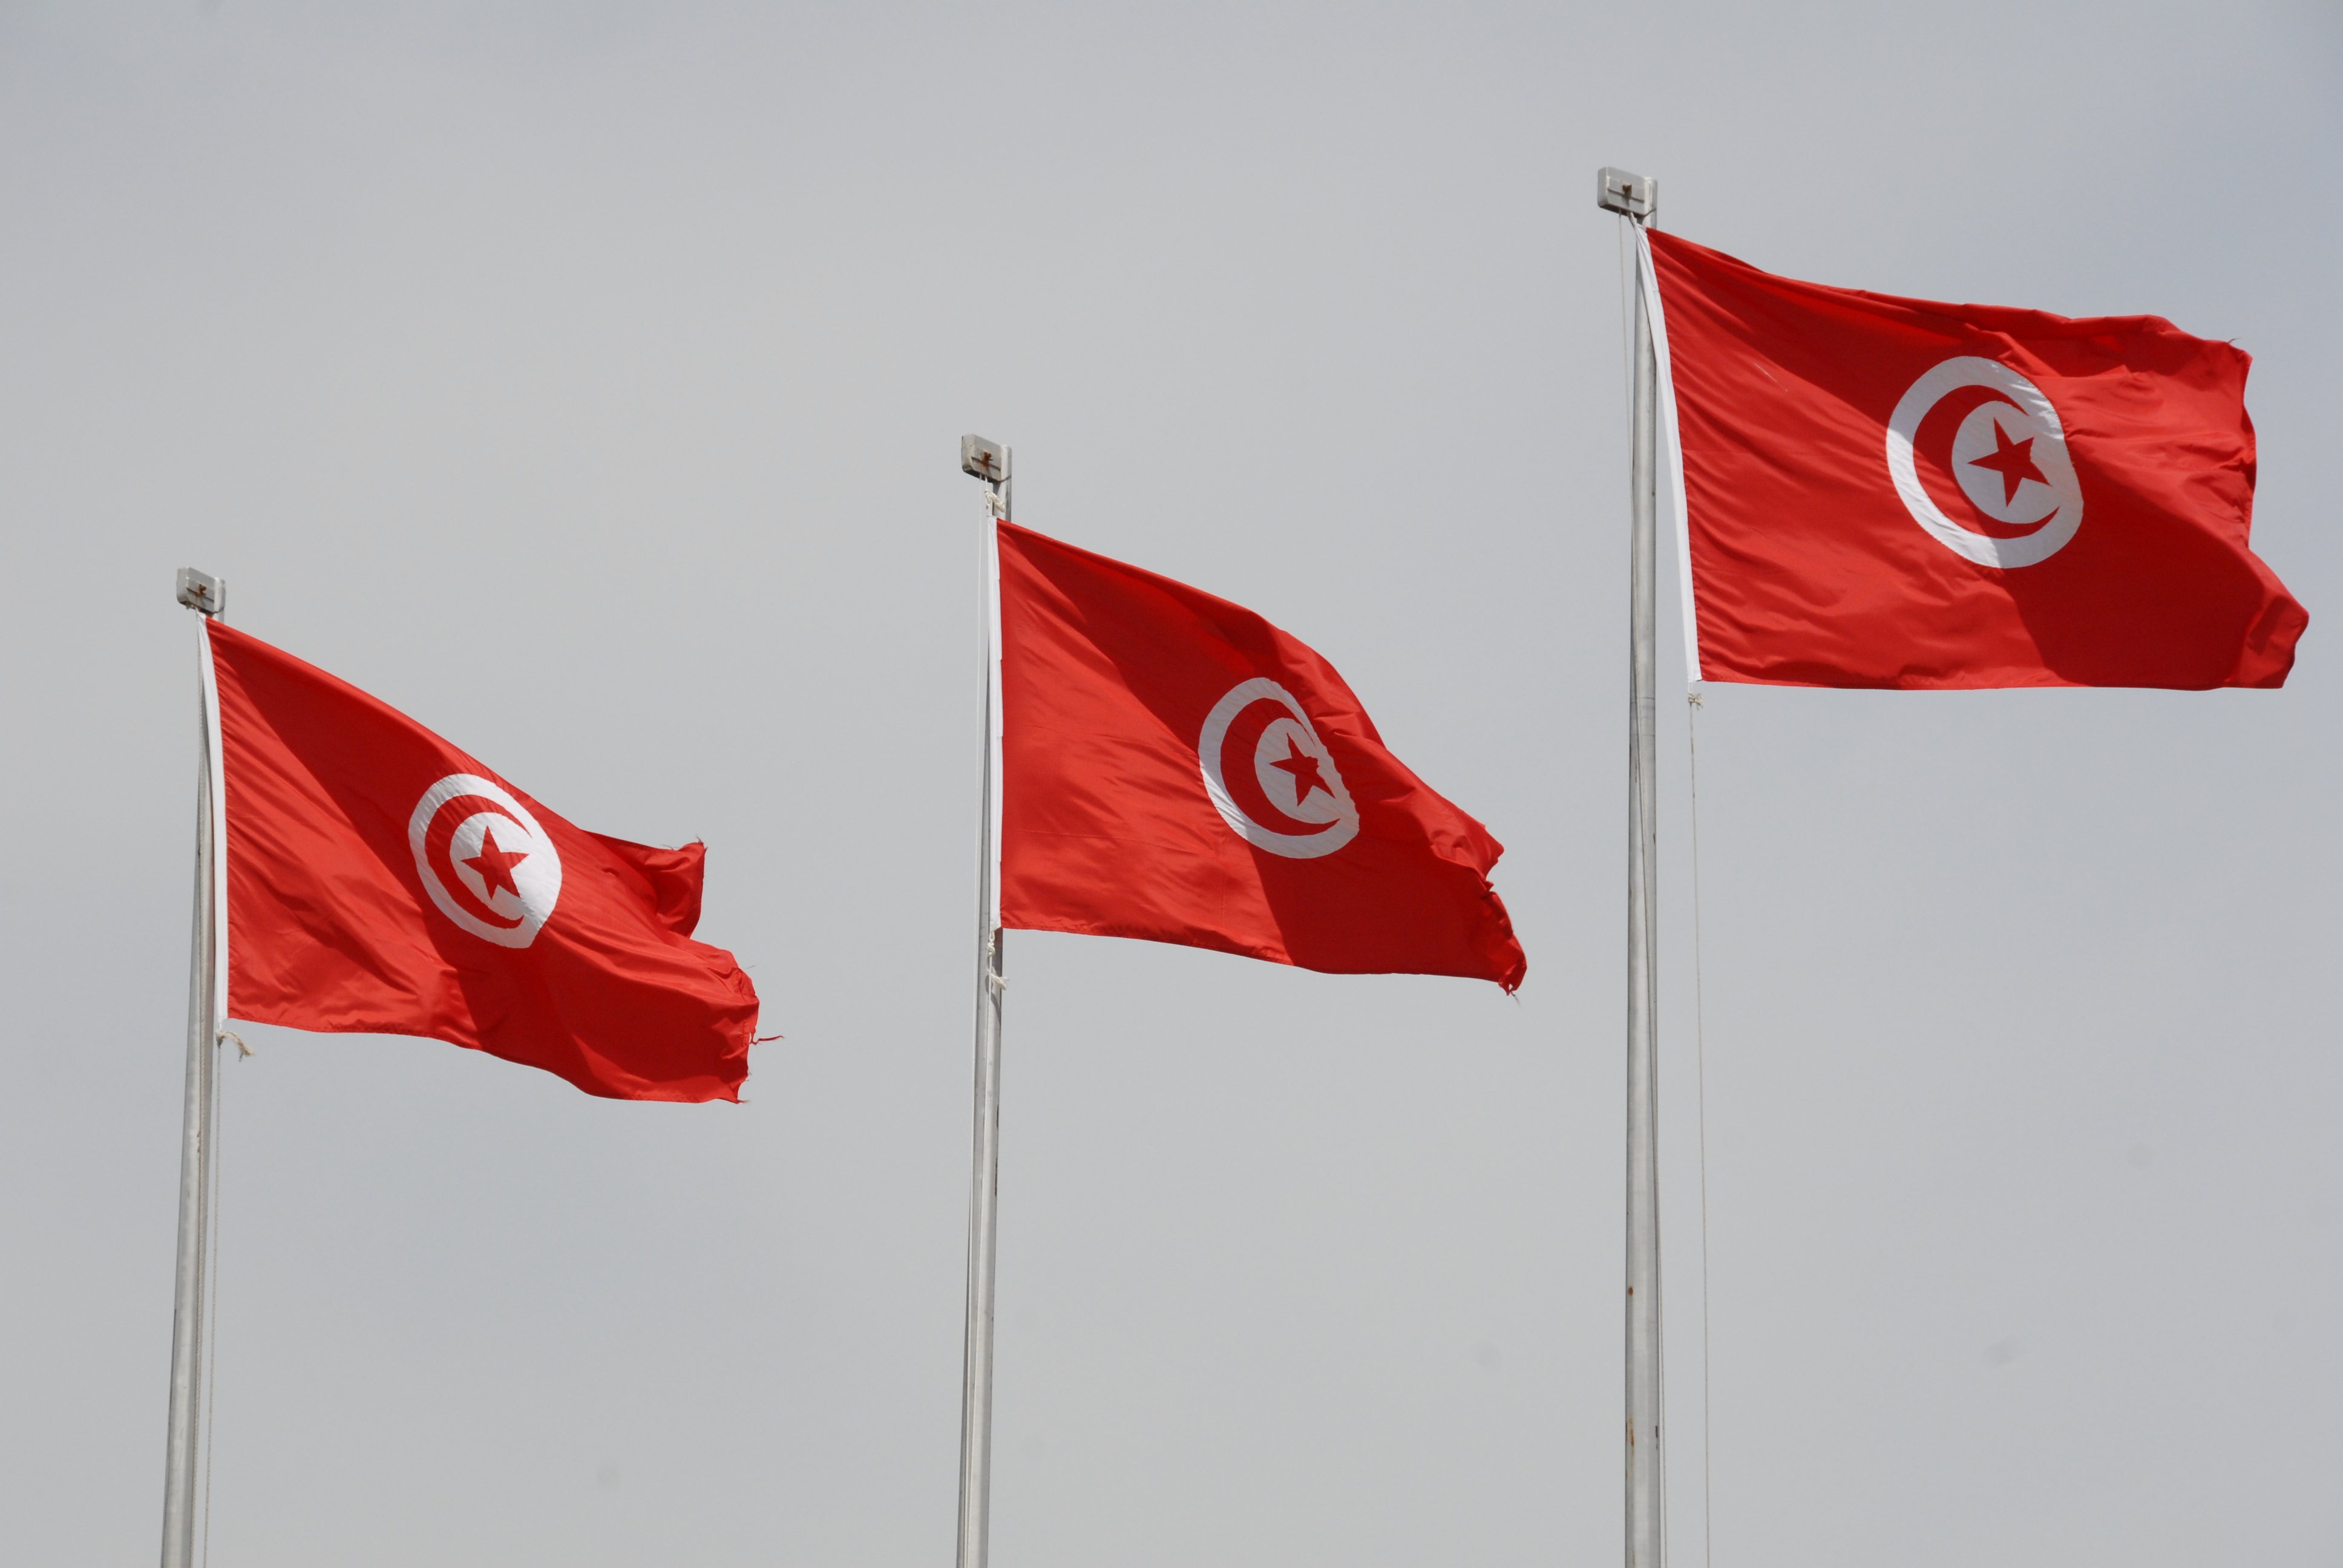 Tunisia's powerful union calls to change political system